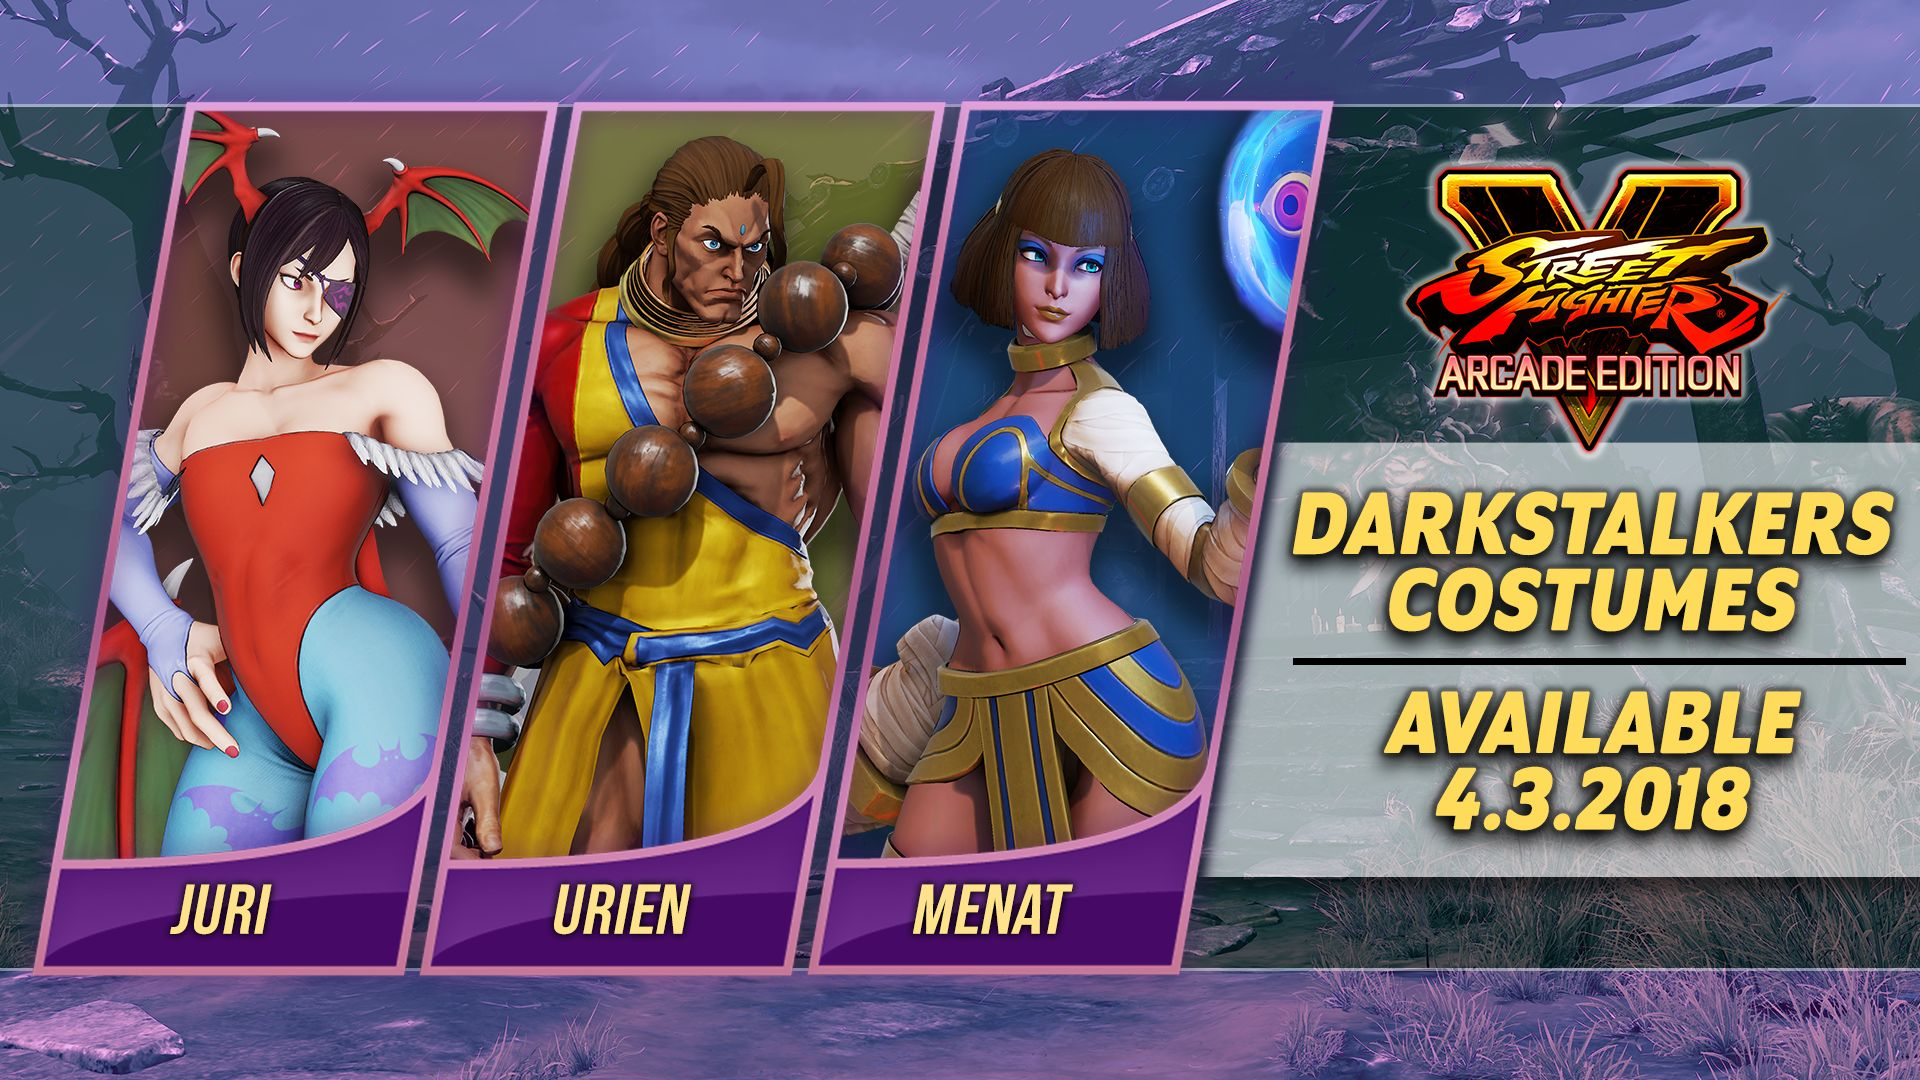 Street Fighter 5 Darkstalkers